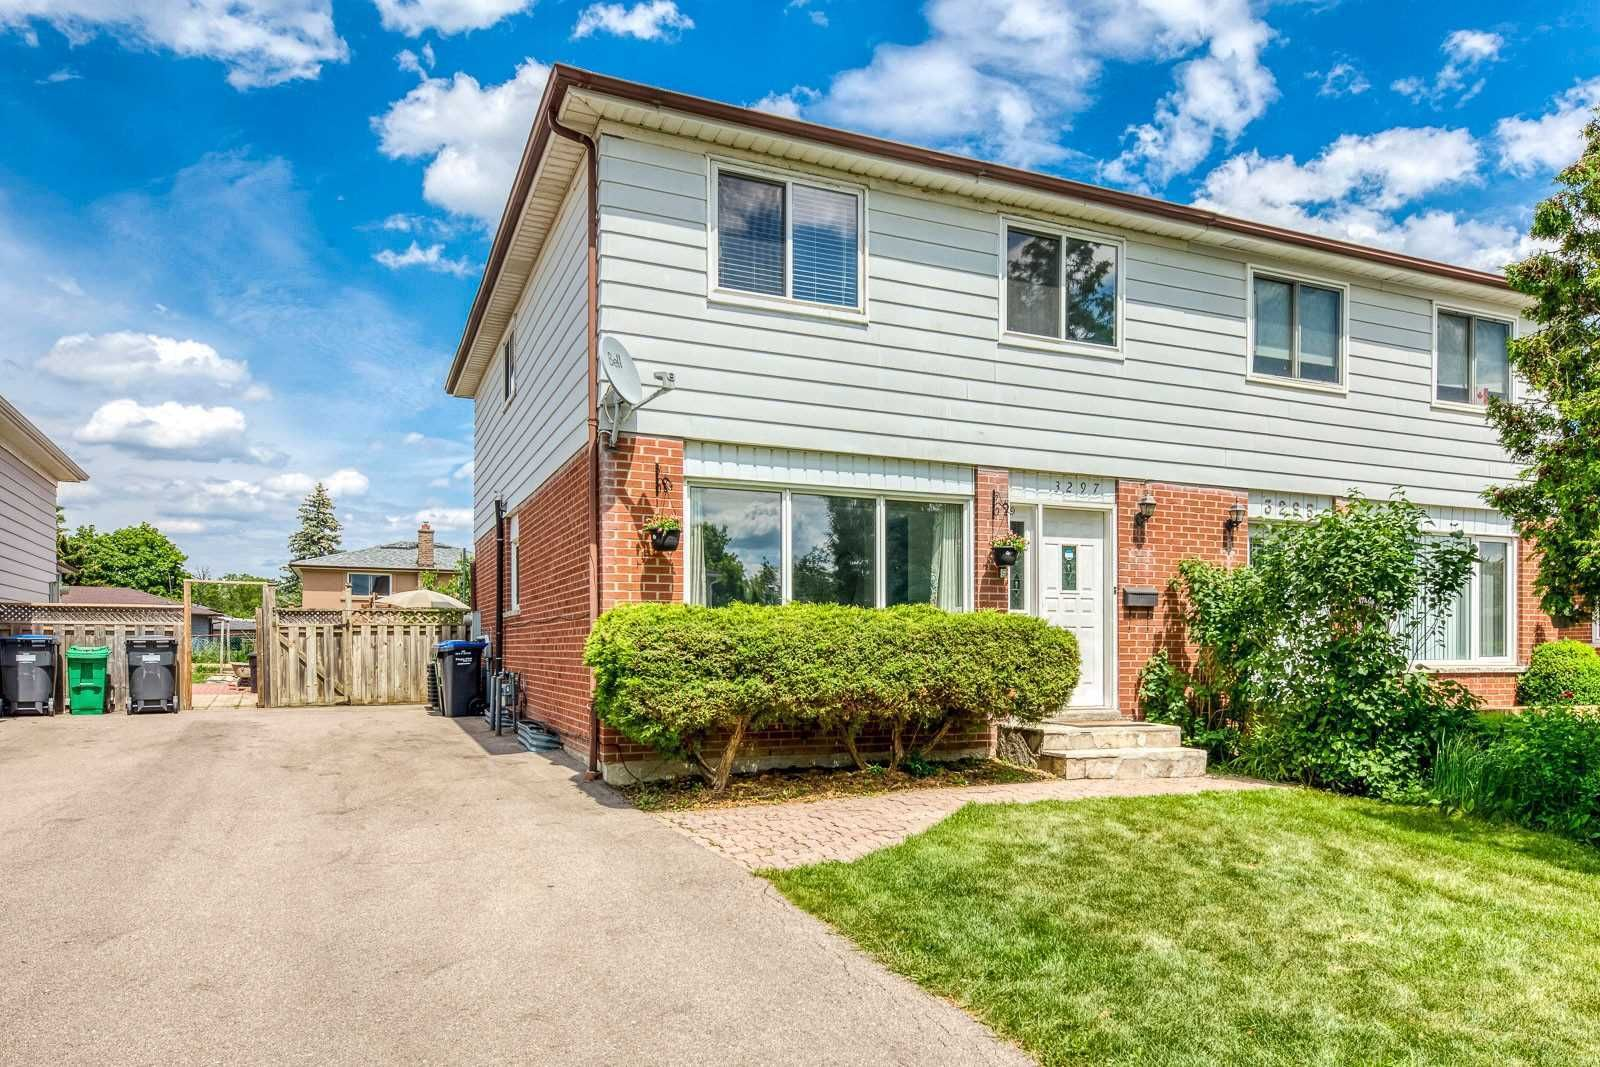 Main Photo: 3297 Grechen Road in Mississauga: Erindale House (2-Storey) for sale : MLS®# W4807876